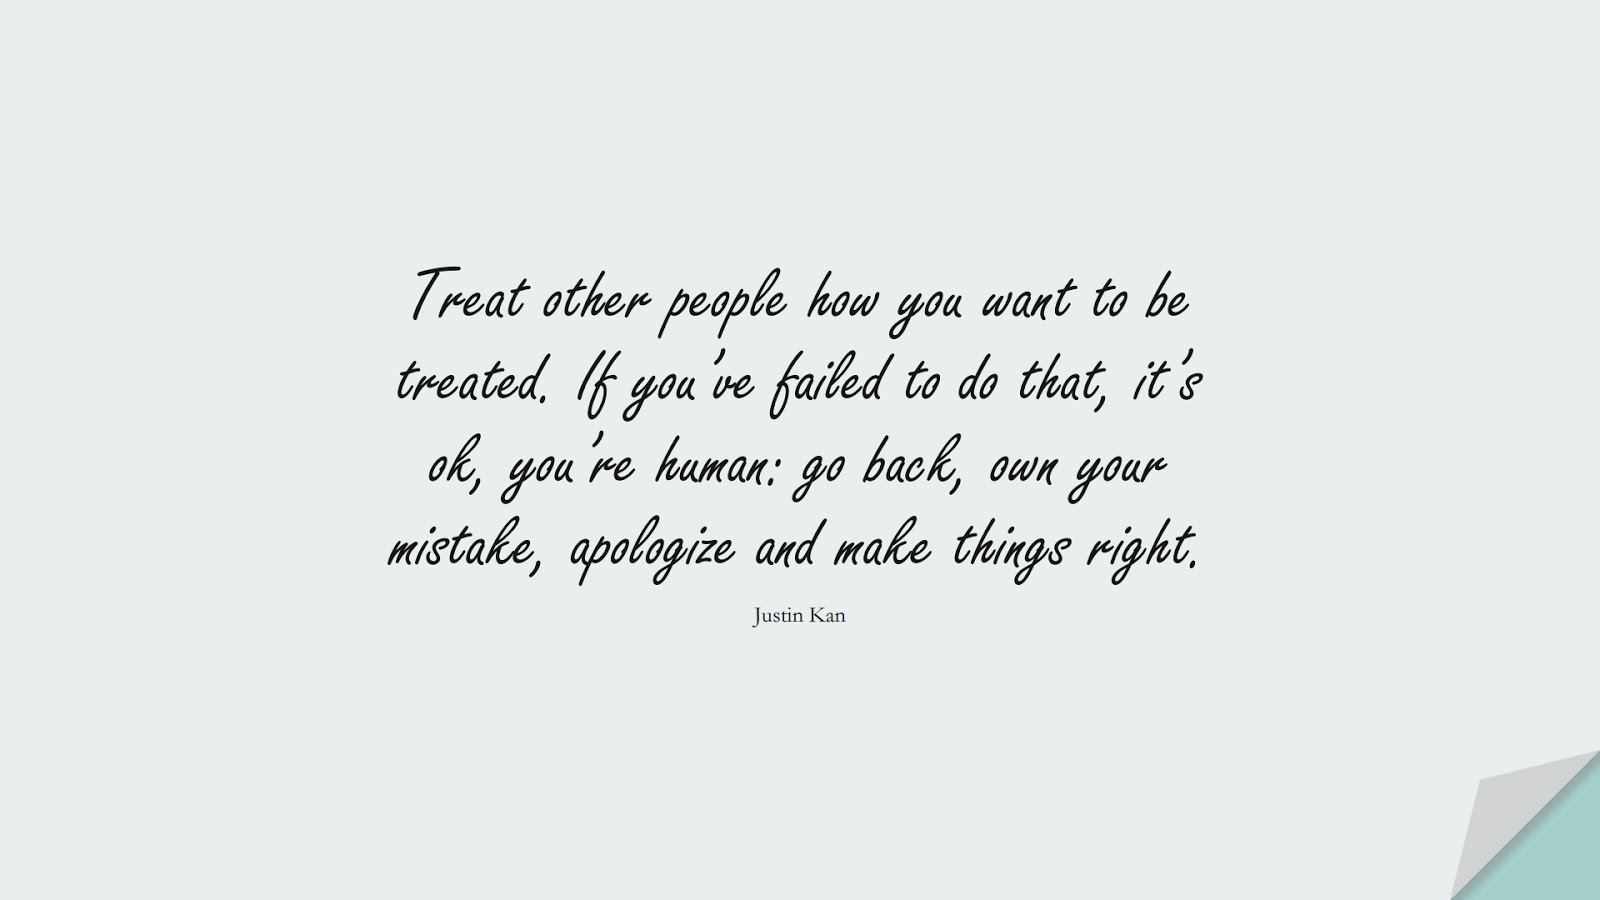 Treat other people how you want to be treated. If you've failed to do that, it's ok, you're human: go back, own your mistake, apologize and make things right. (Justin Kan);  #RelationshipQuotes